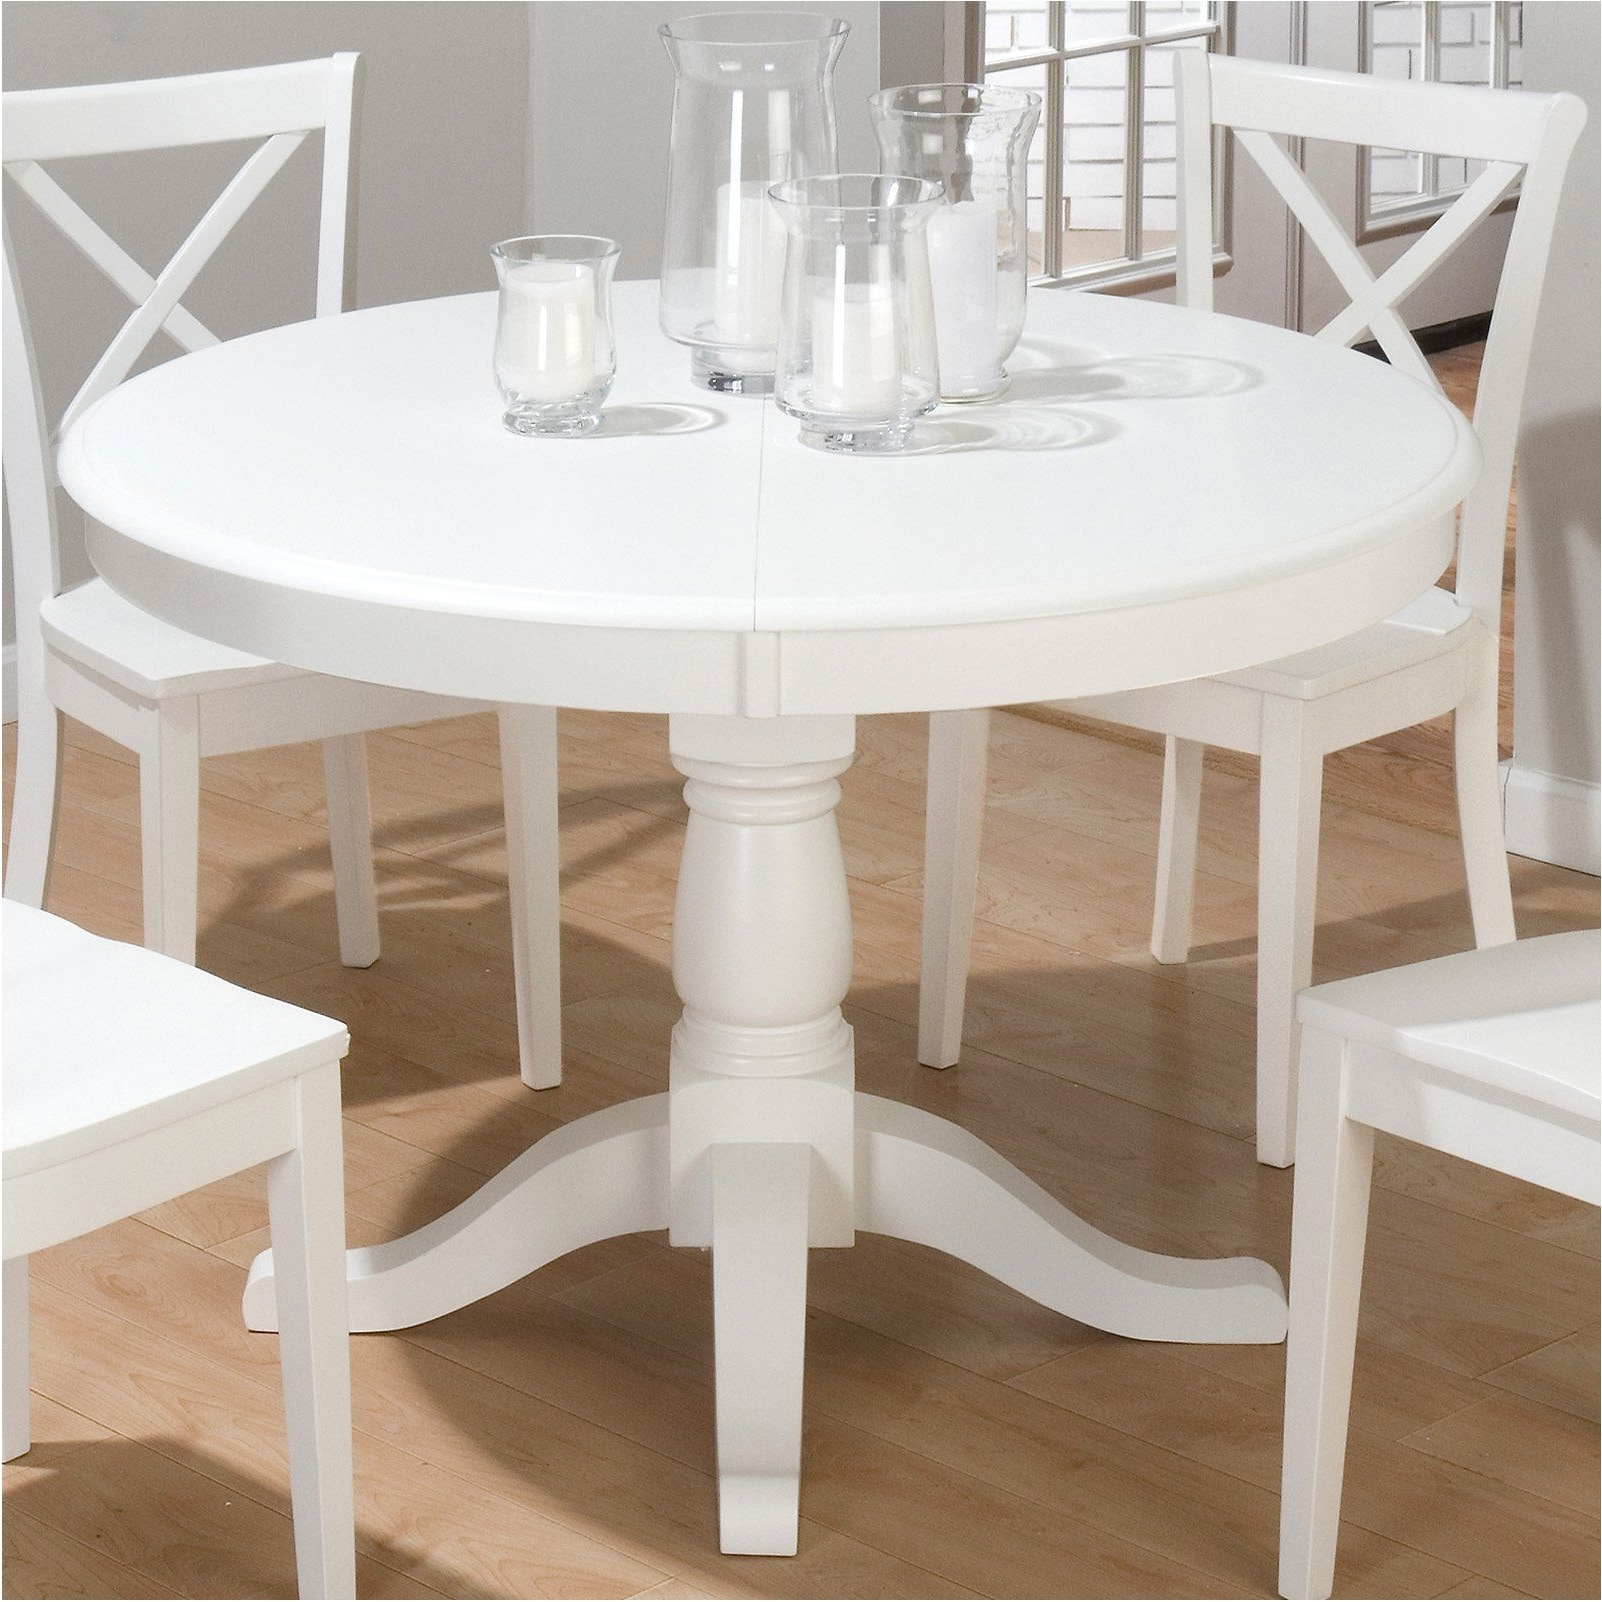 Widely Used Round White Dining Tables Pertaining To Magnificent Decorative Small Round White Dining Table 17 Kitchen (View 6 of 25)